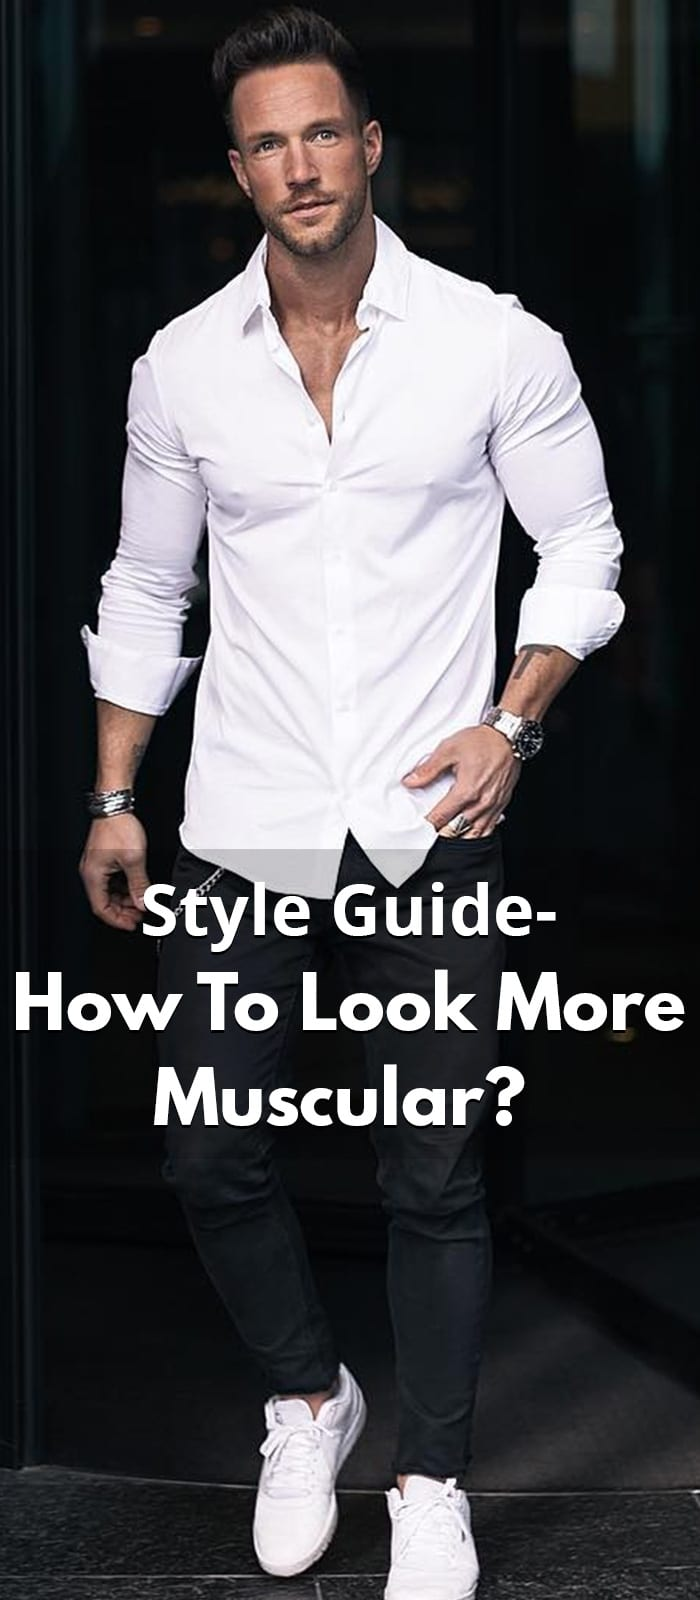 Style Guide- How To Look More Muscular